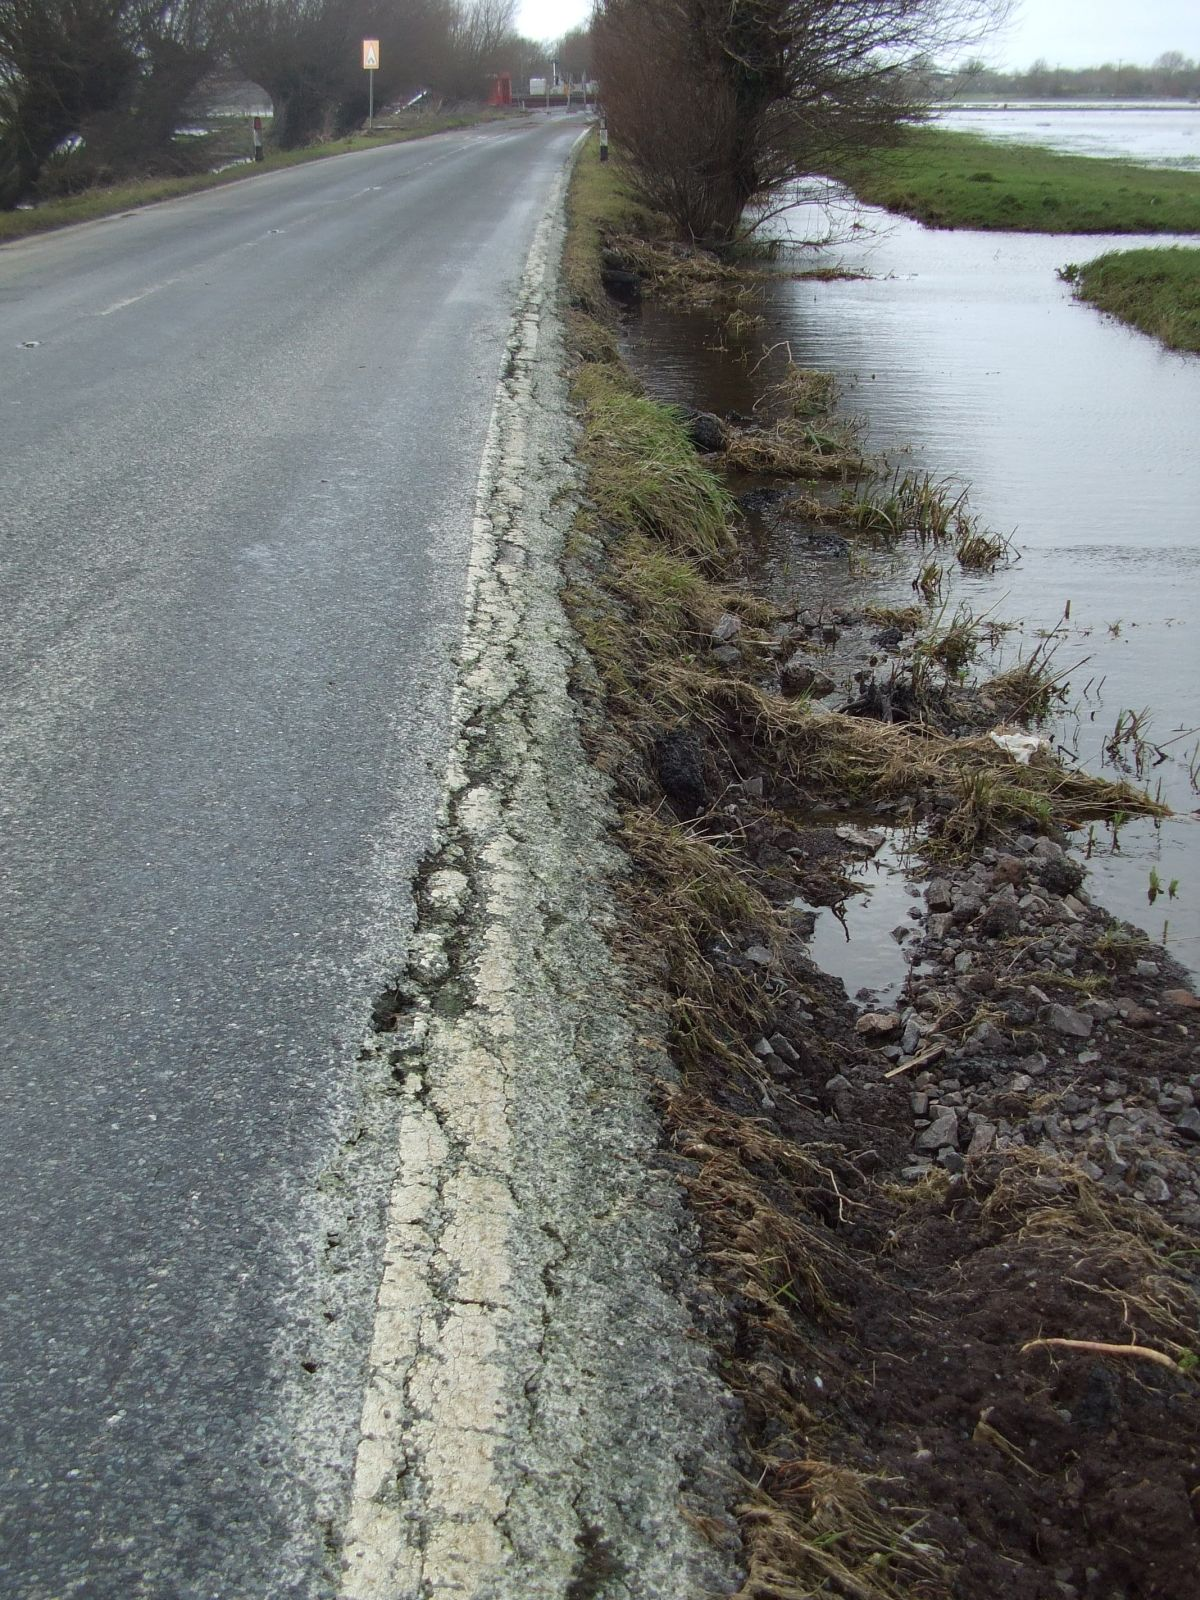 The extent of damage caused to the edge of the A372 by recent floods